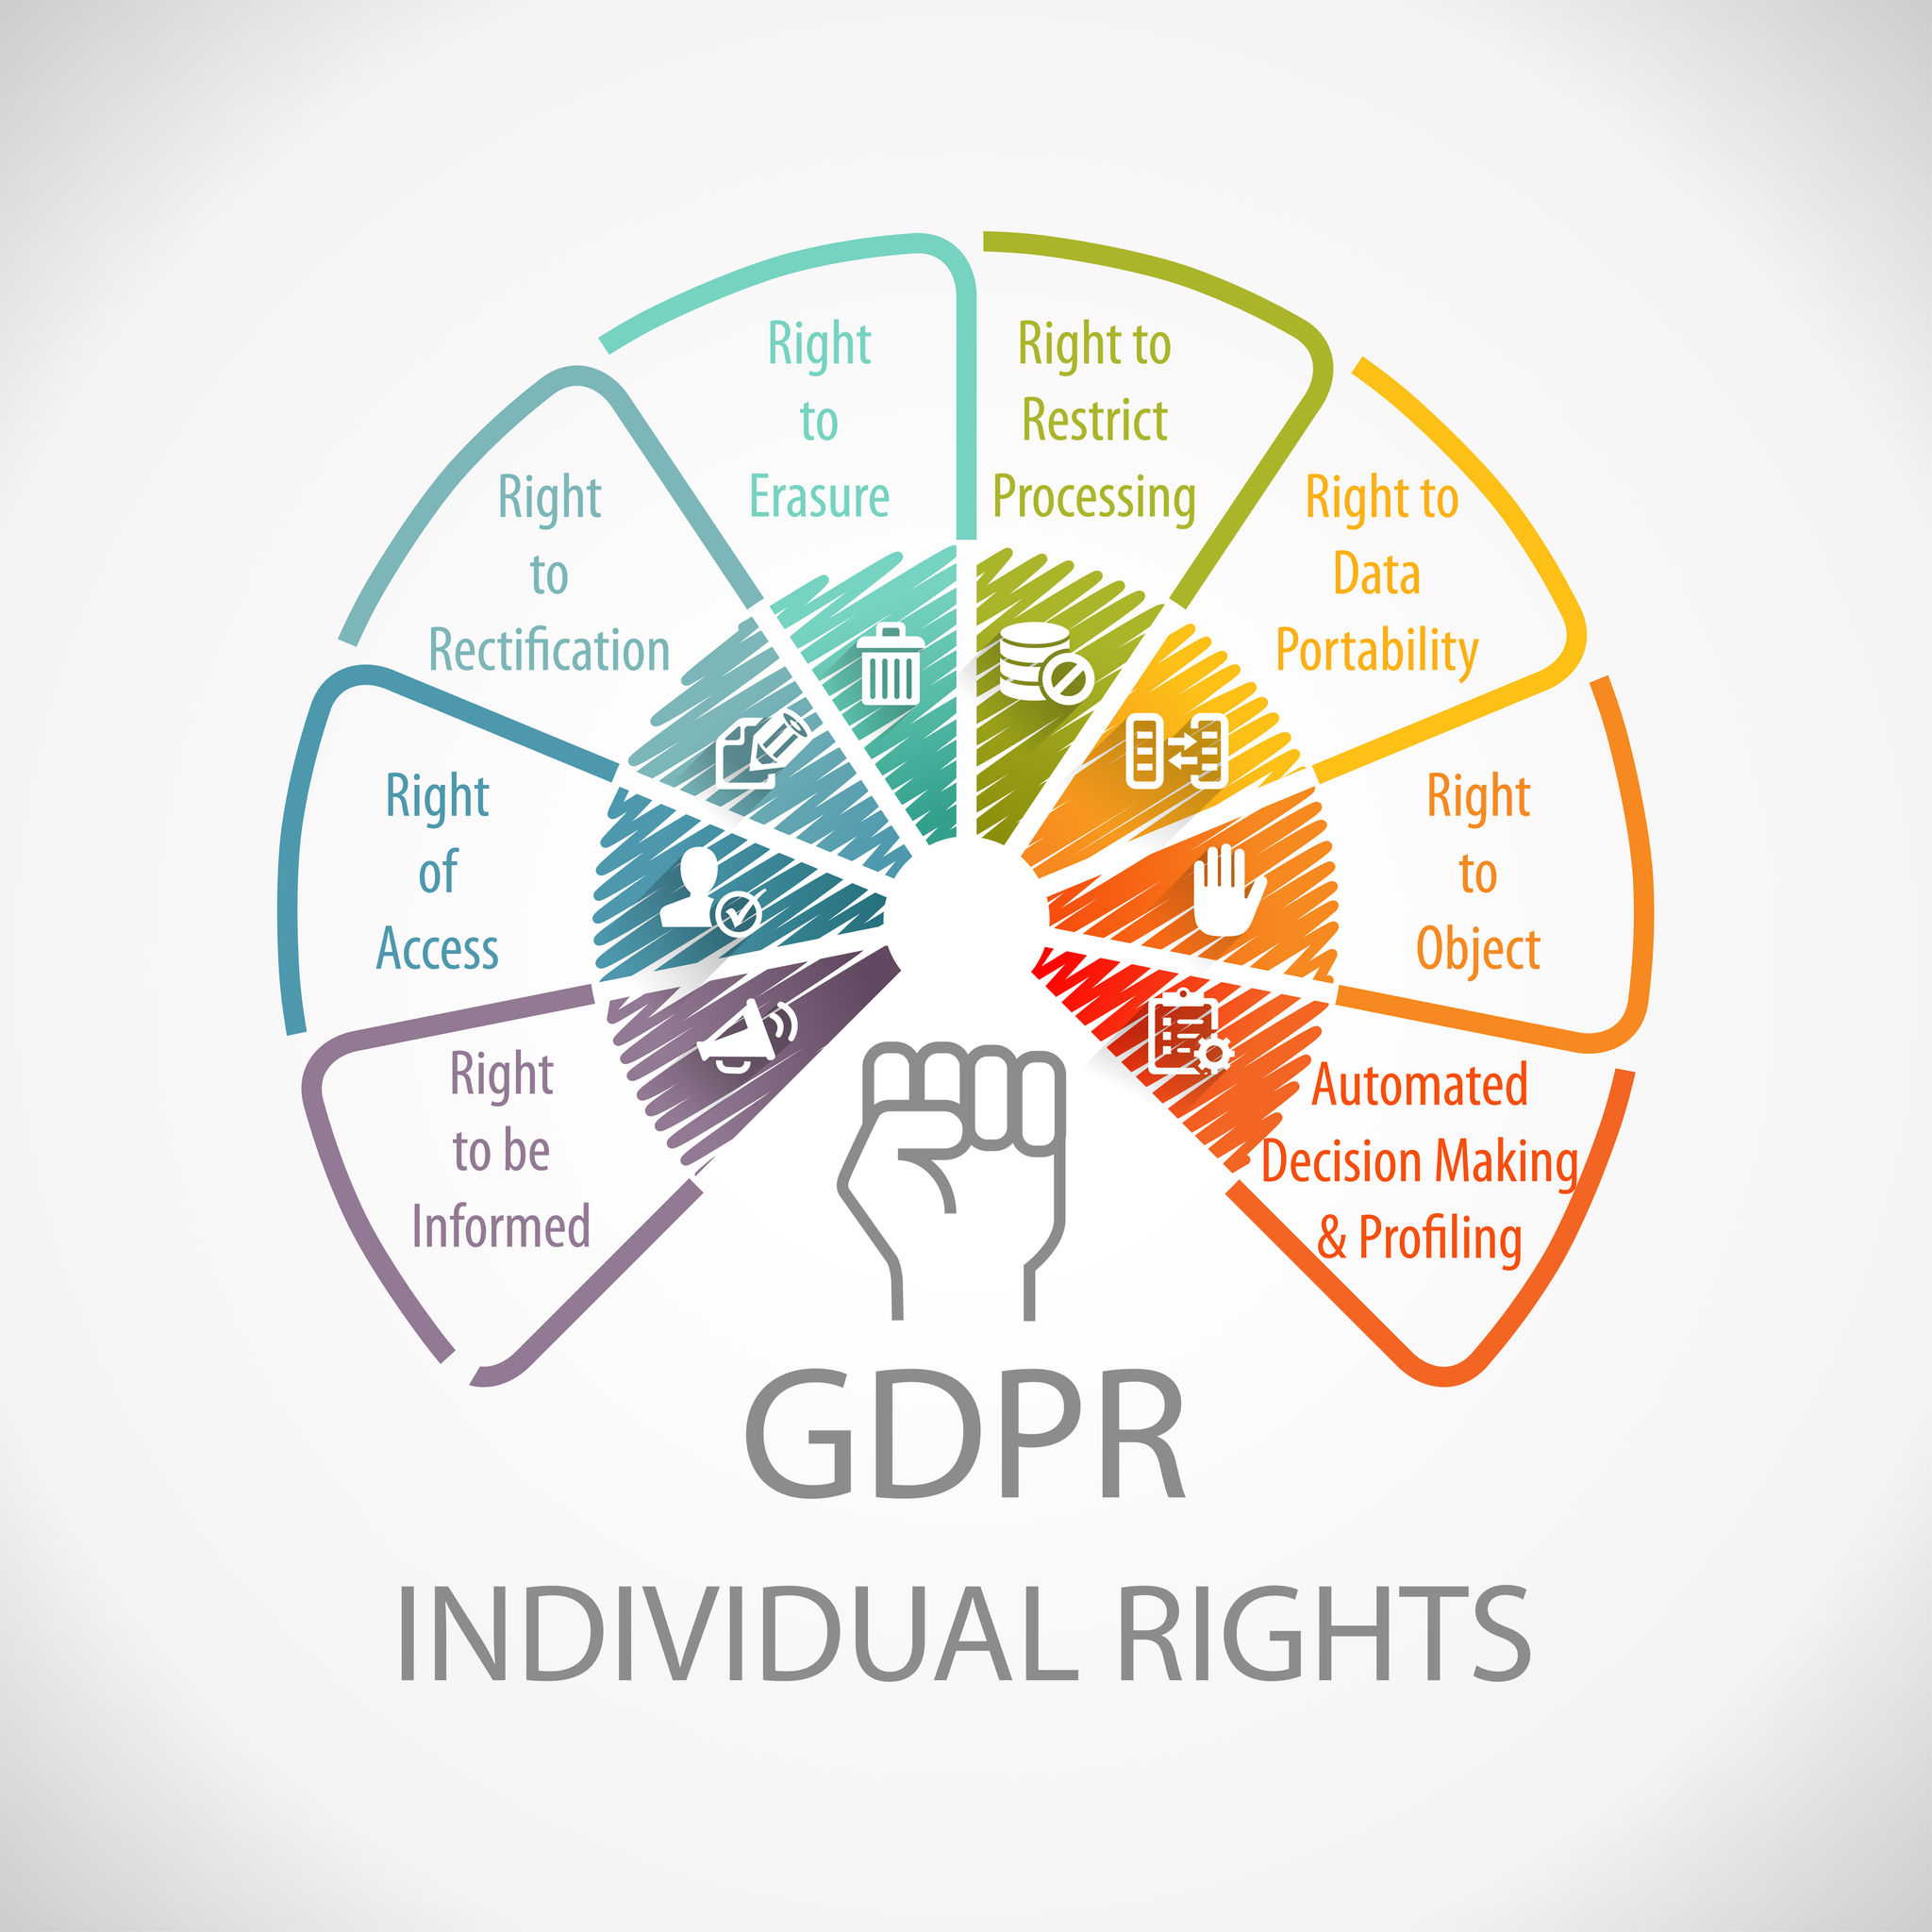 GDPR – Do you need help understanding what it means to you?